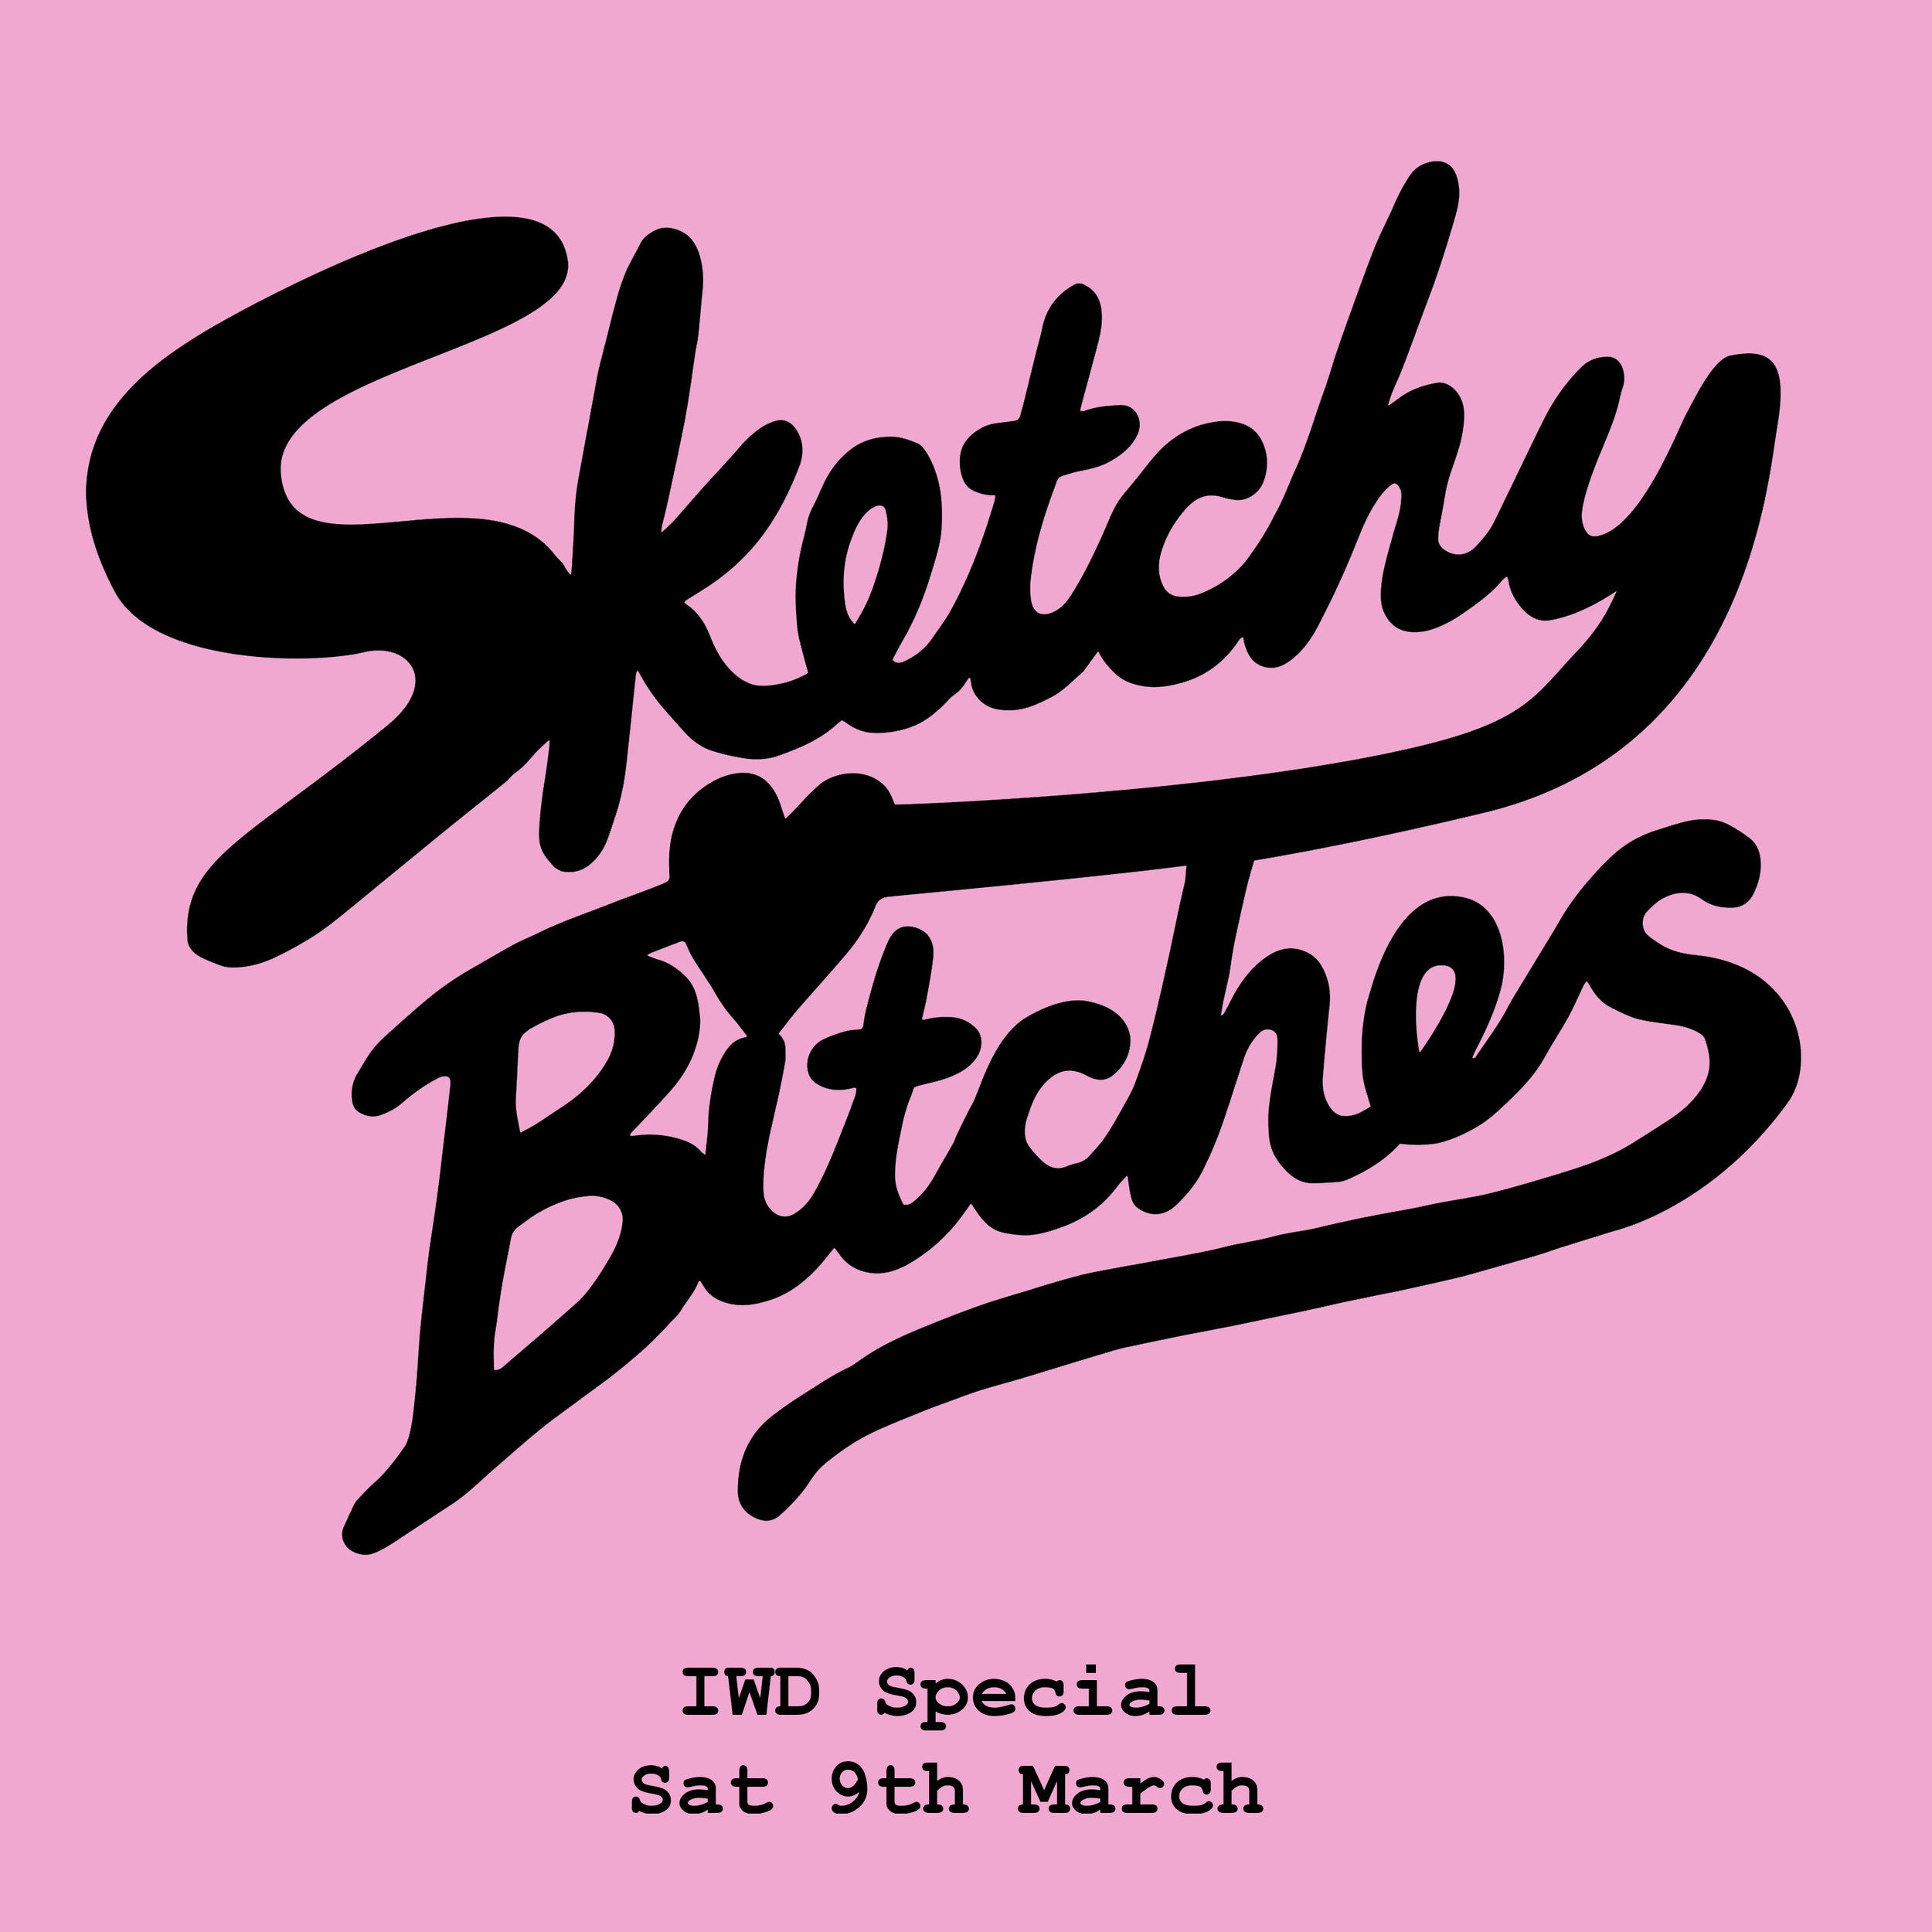 Sketchy Bitches IWD launch.jpg